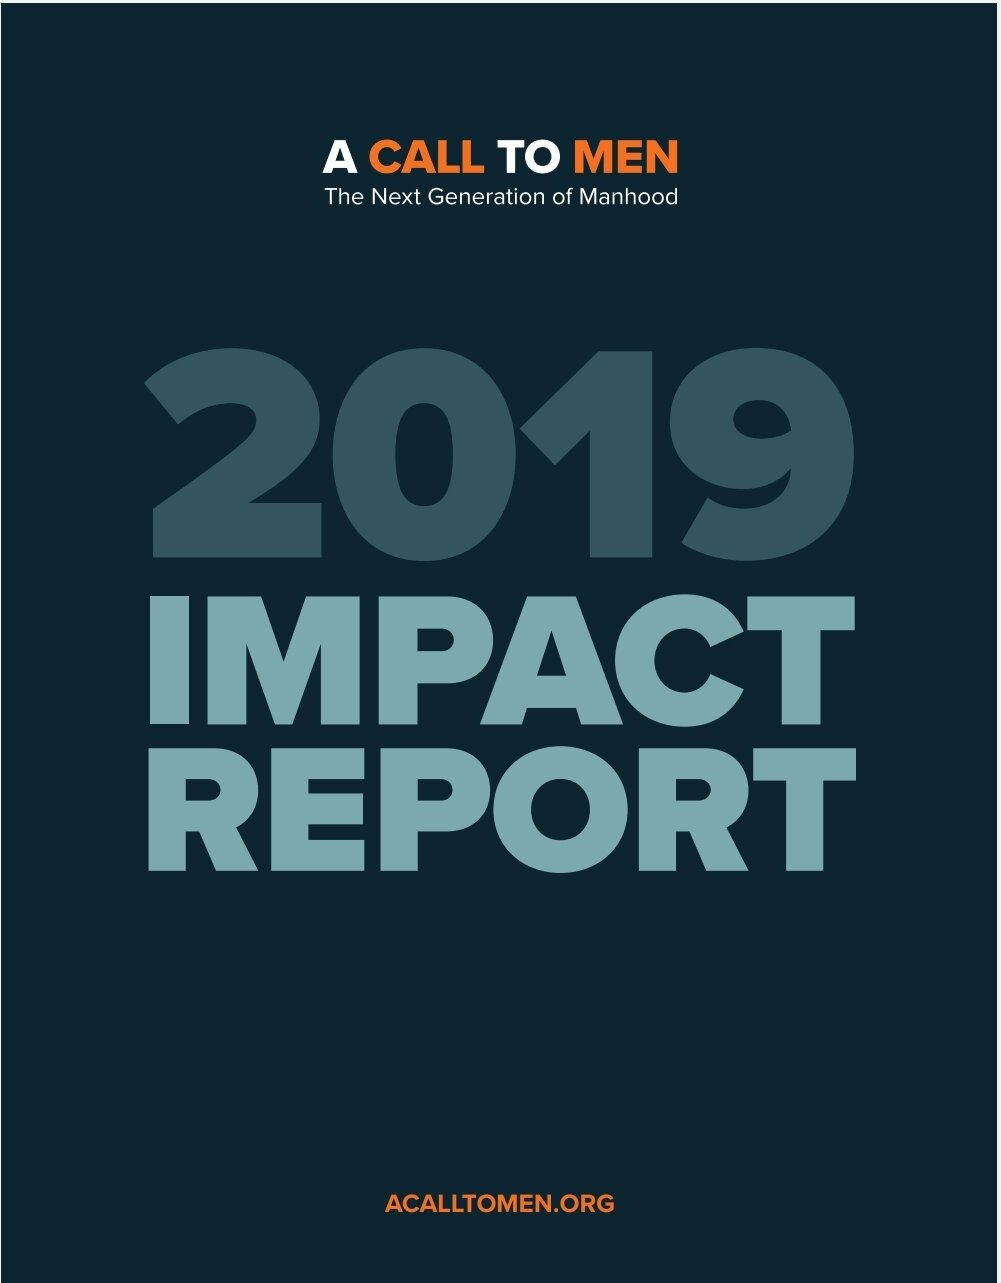 A Call To Men 2019 Impact Report